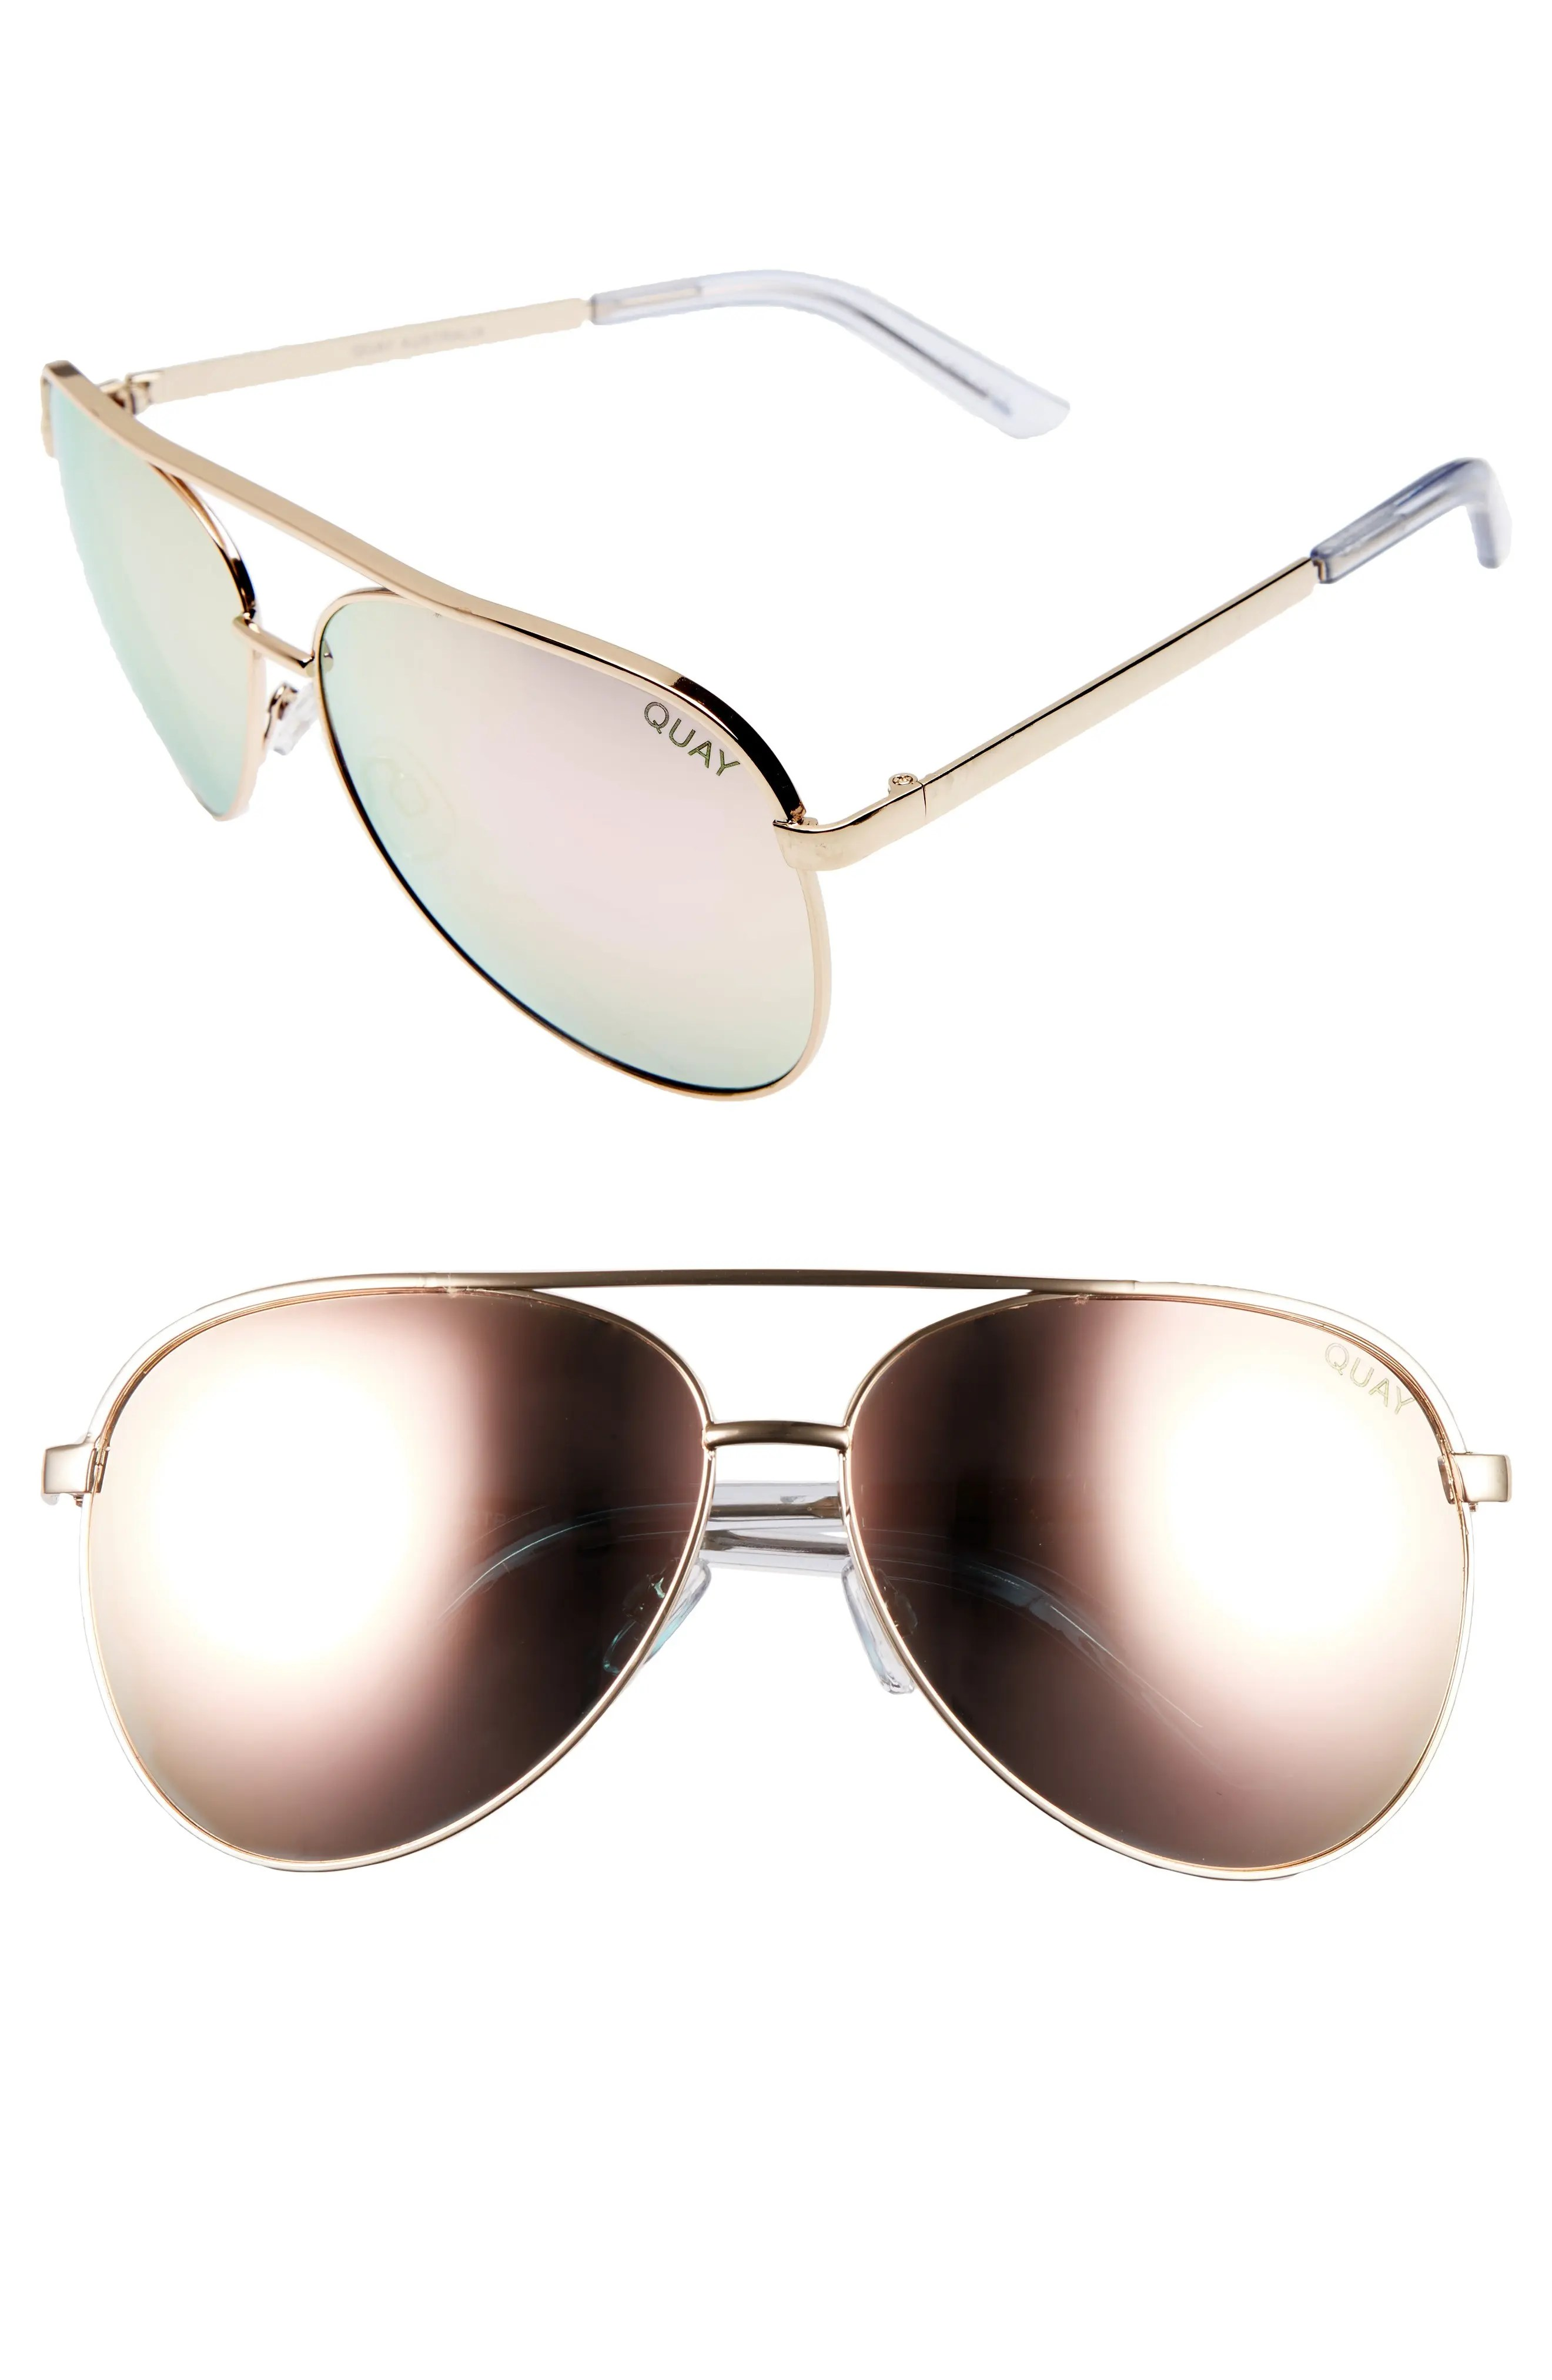 Main Image - Quay Australia Vivienne 64mm Aviator Sunglasses